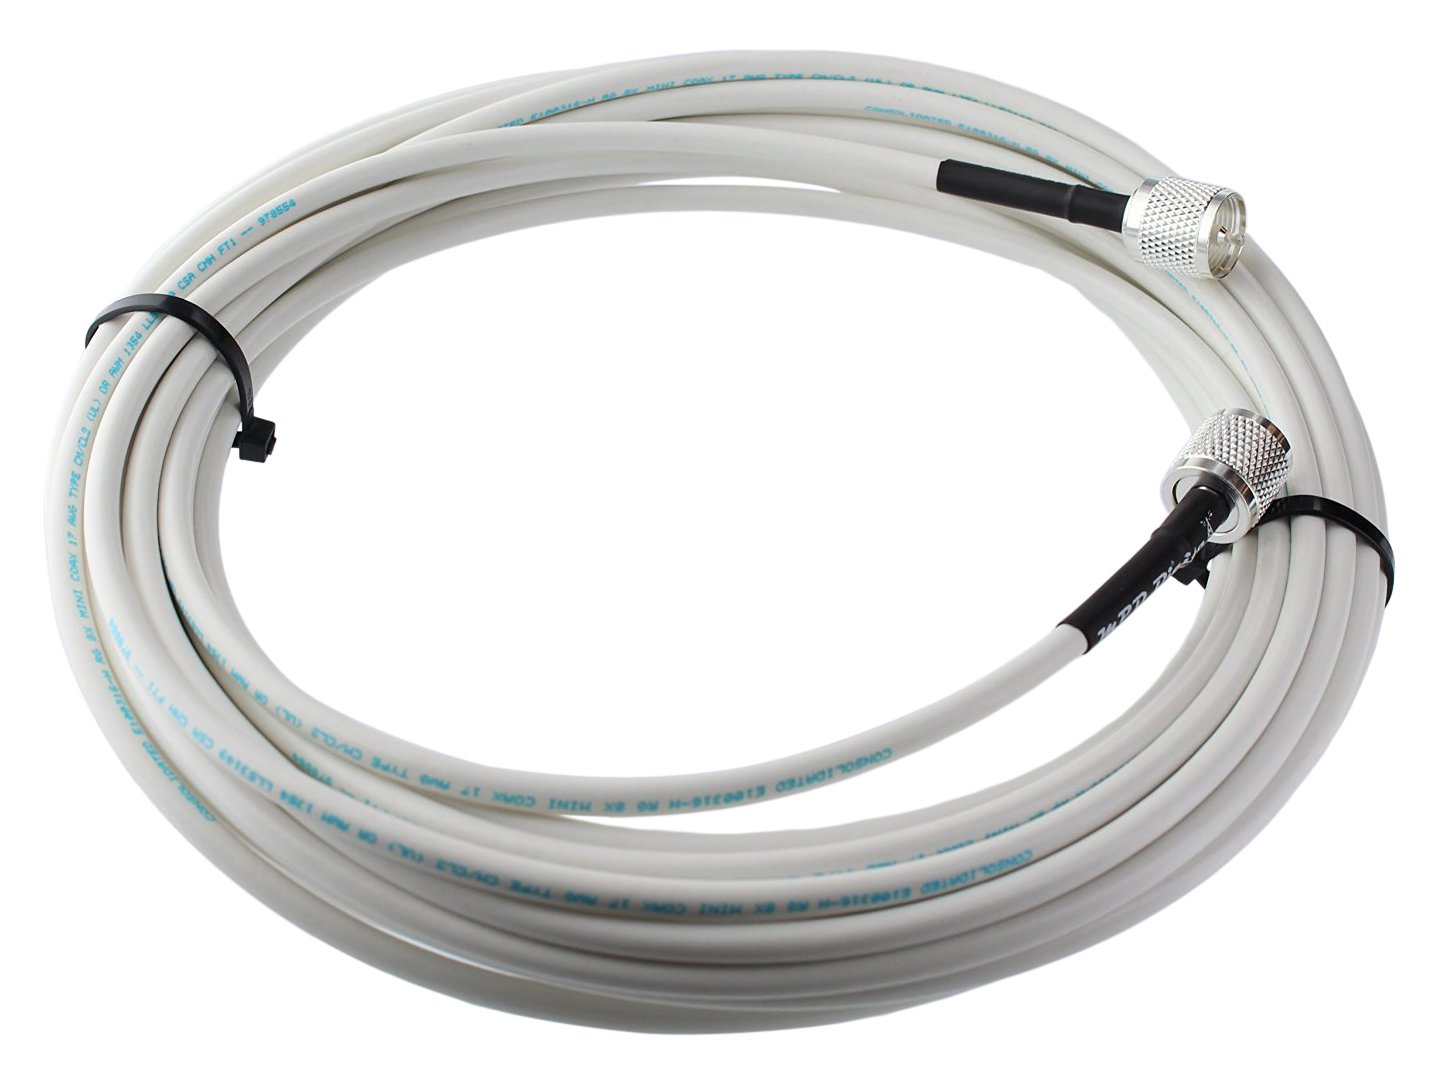 MPD Digital RG8x-W-PL259-65ft VHF Antenna Cable RF CB & AIS